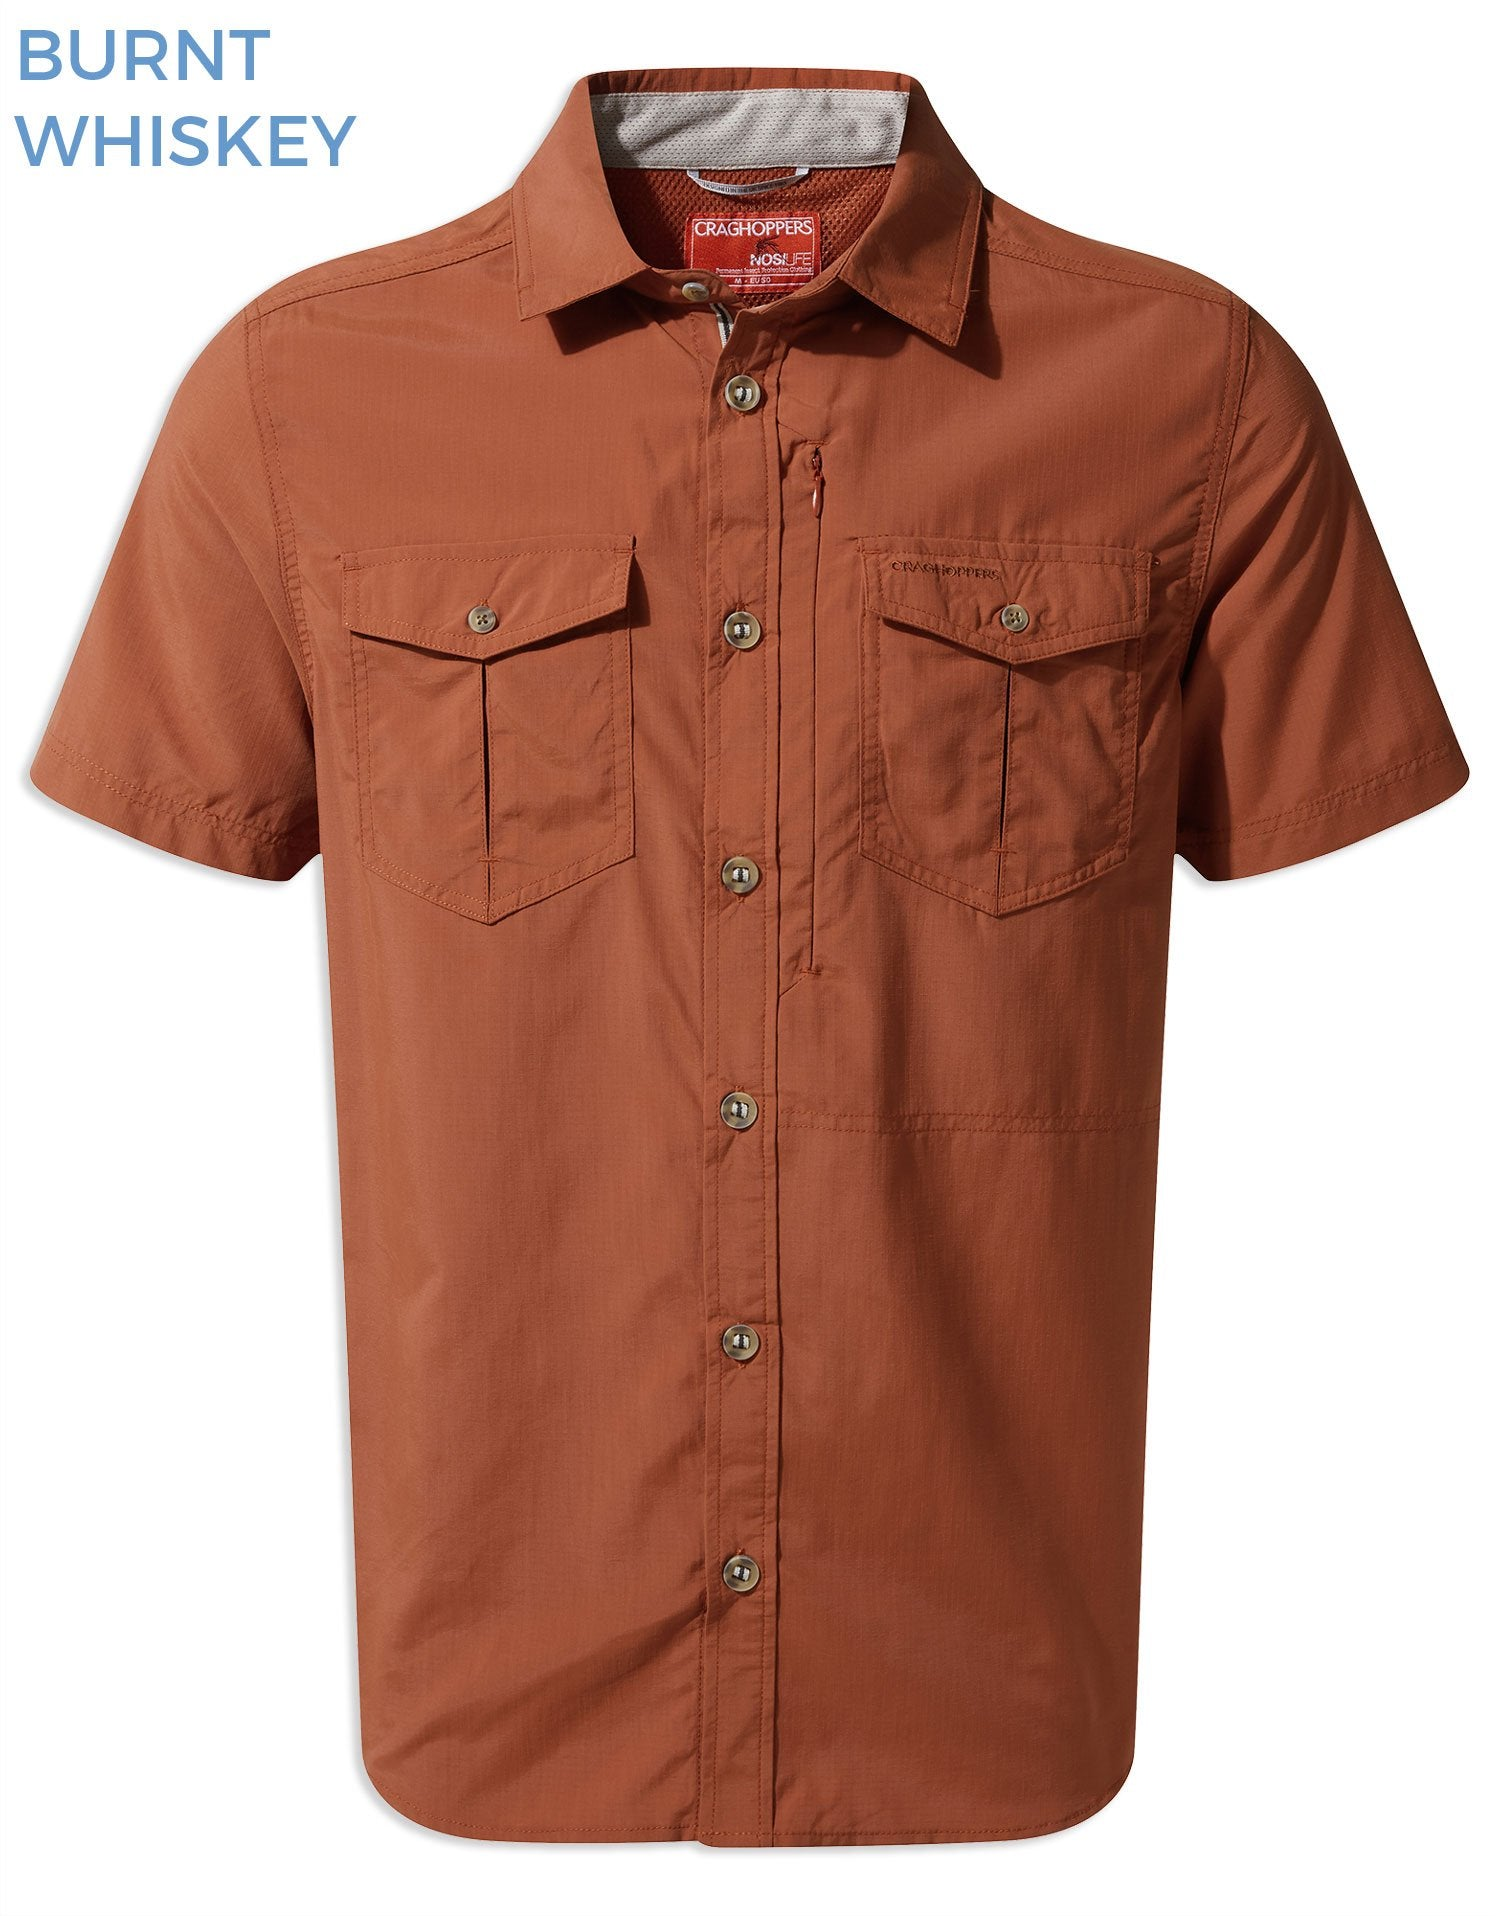 Whiskey Adventure II Short Sleeve Shirt by Craghoppers